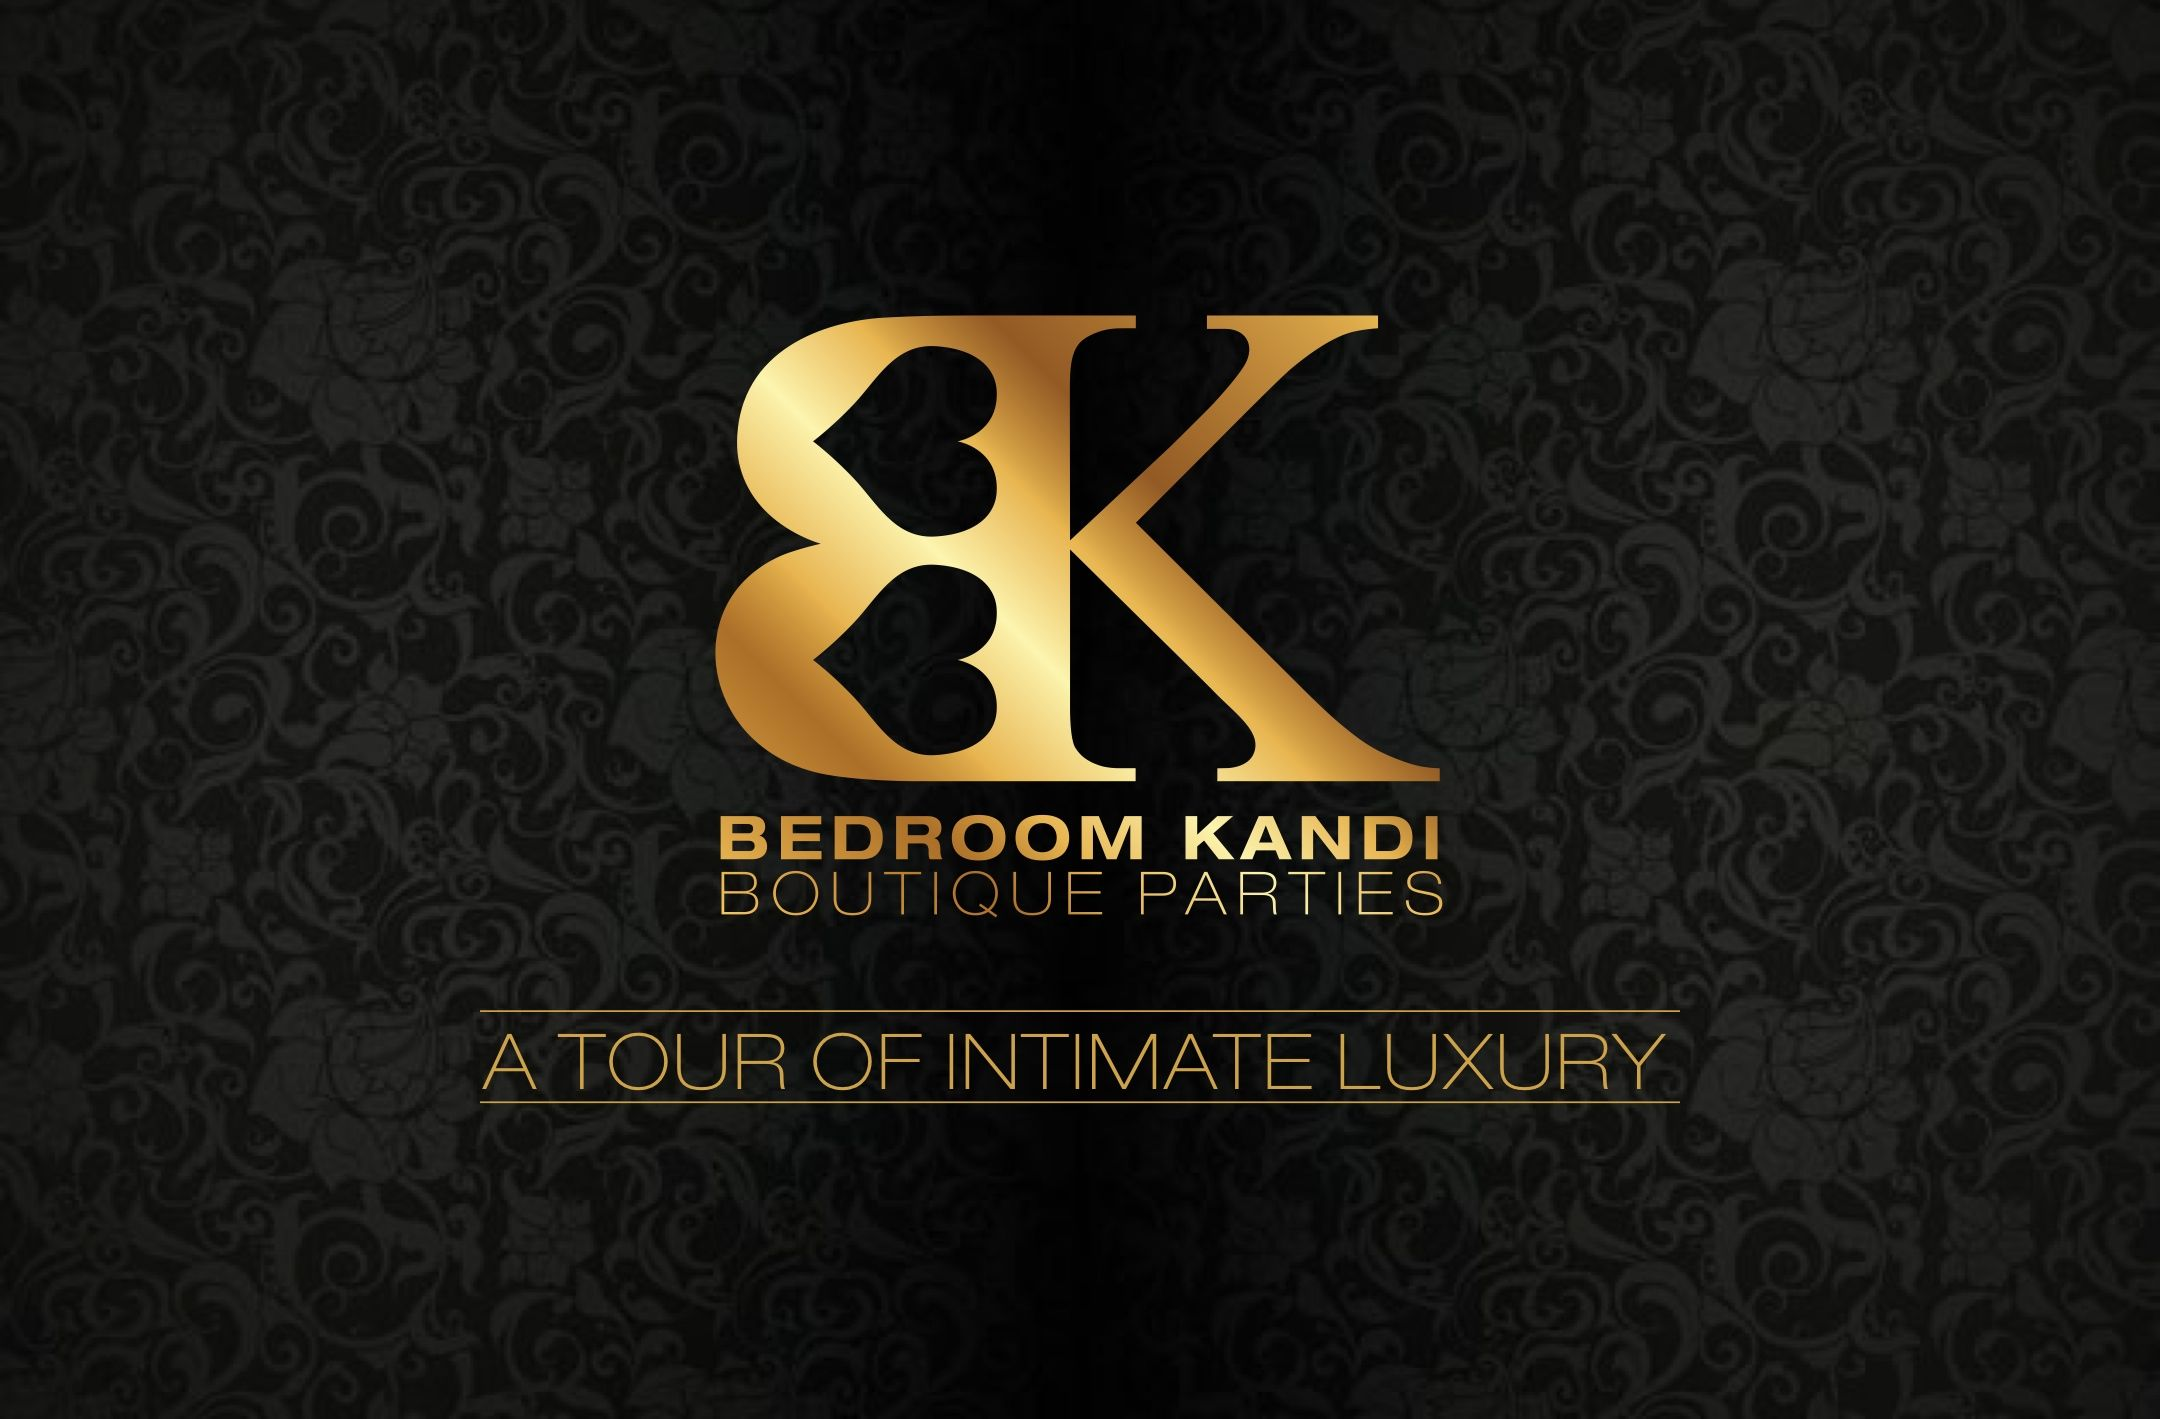 Pin On Bedroom Kandi Boutique Parties By Marcy